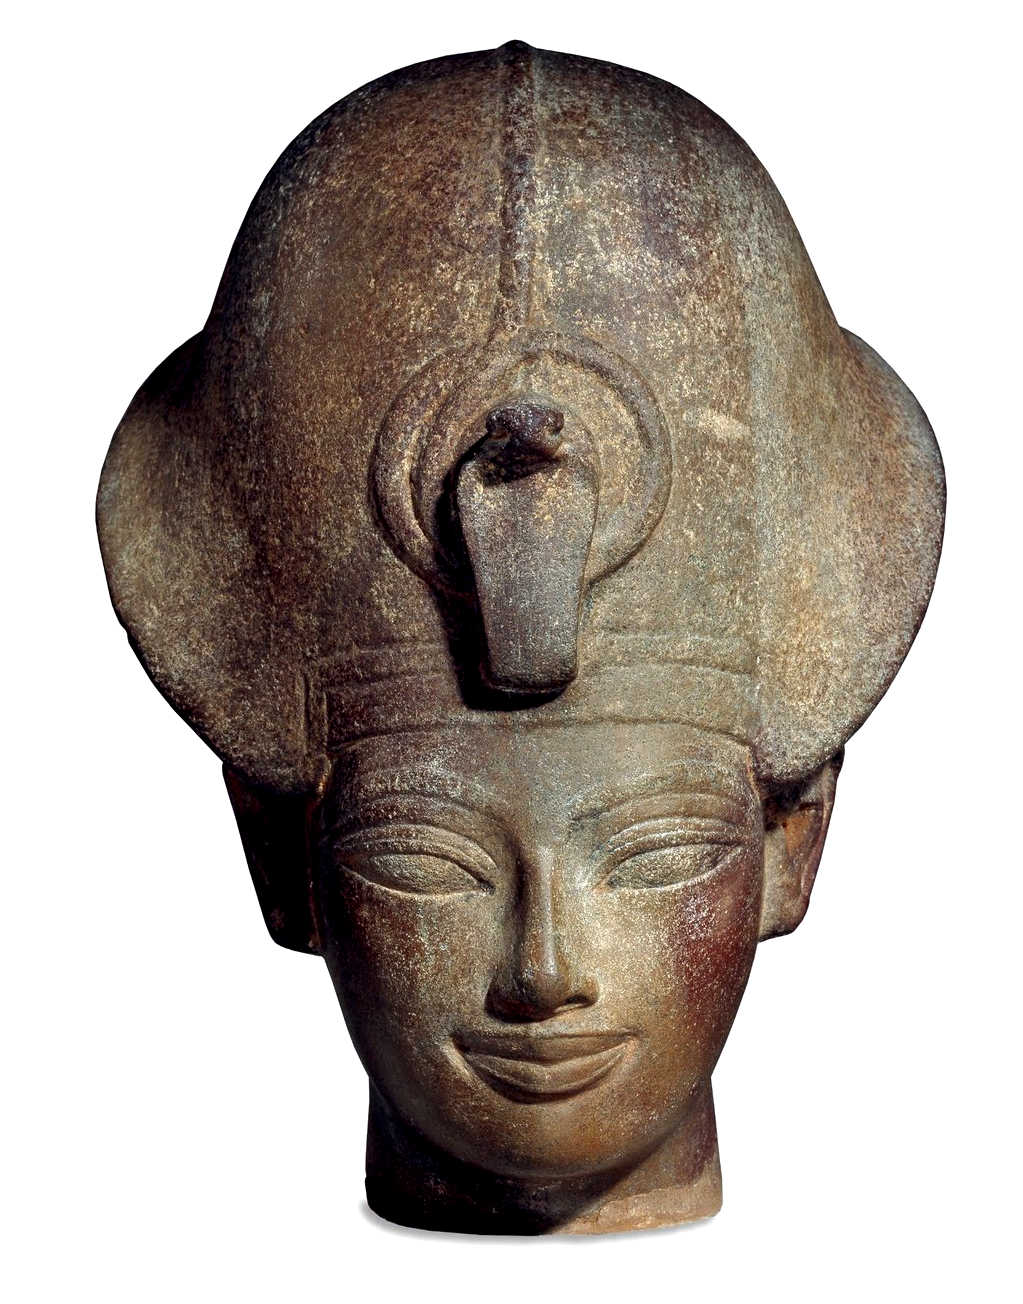 the origins of akhenaten The earliest inscriptions of akhenaten continue to refer to gods in the plural -- this may be because akhenaten himself has not clarified his beliefs yet, or it may be that sculptors needed some time to get used to the idea of using the singular.